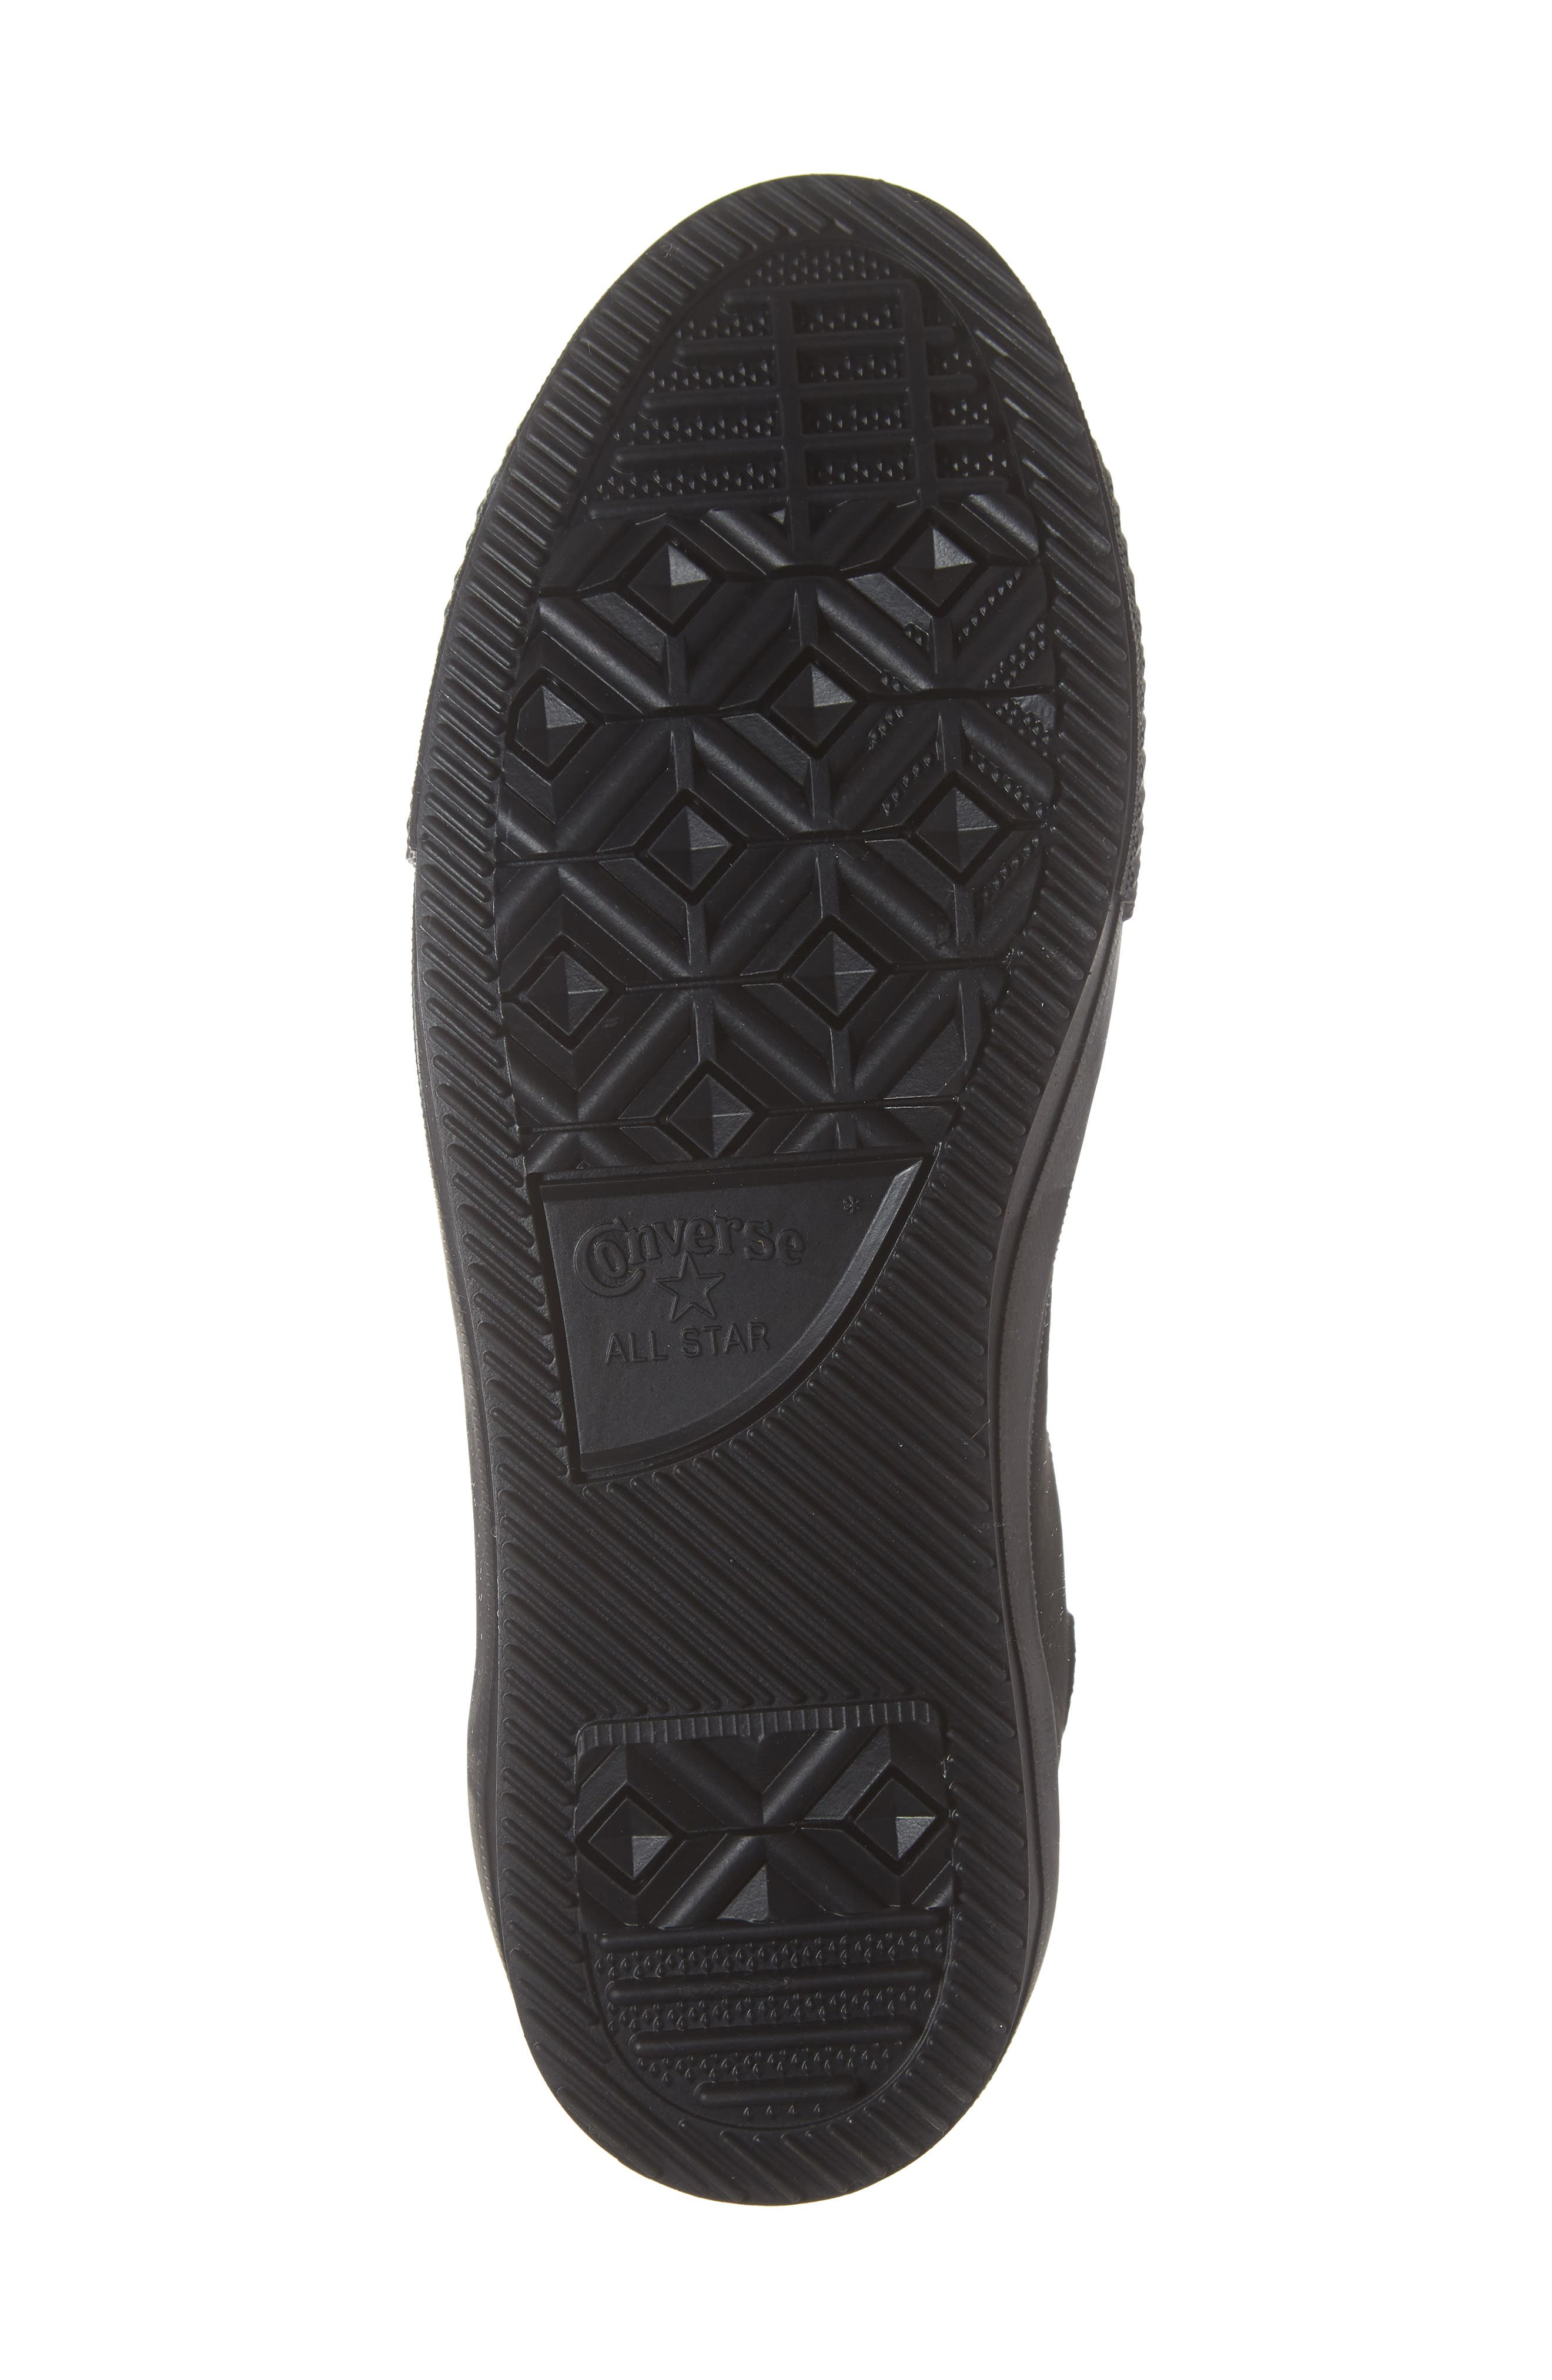 CONVERSE, Chuck Taylor<sup>®</sup> All Star<sup>®</sup> Counter Climate Waterproof Sneaker, Alternate thumbnail 6, color, BLACK/ BLACK/ BLACK